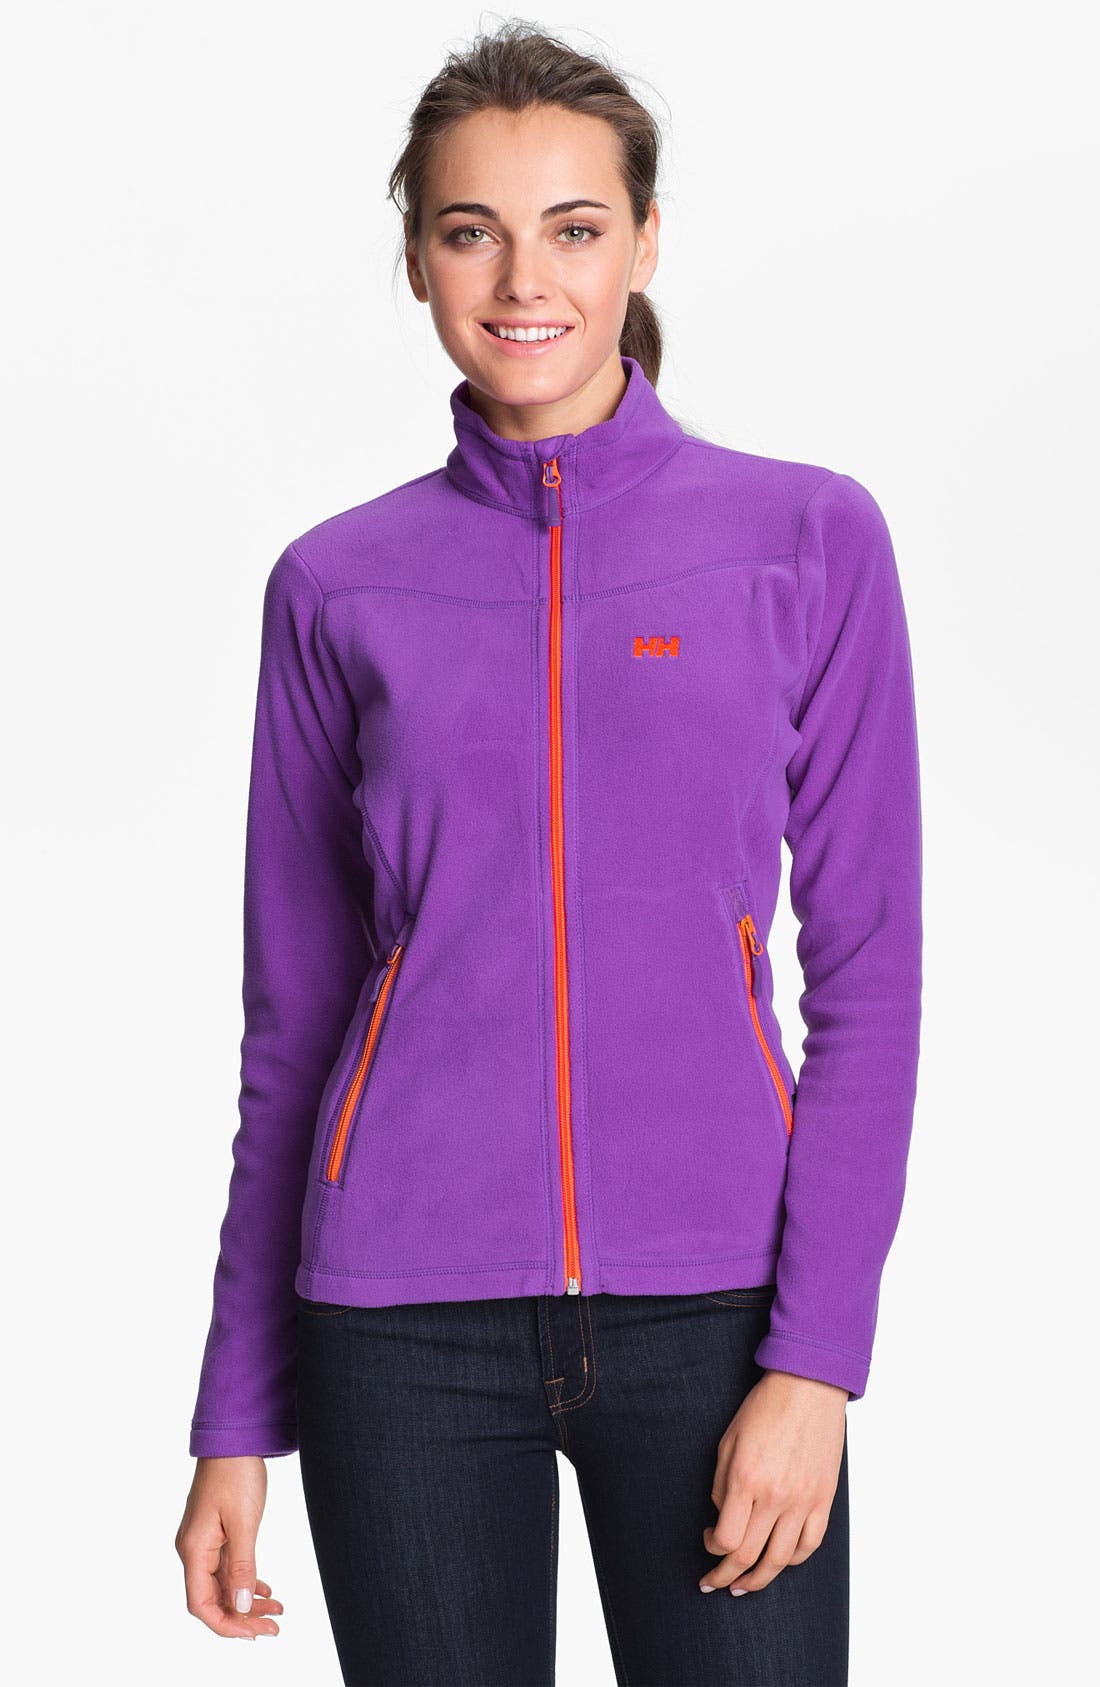 Alternate Image 1 Selected - Helly Hansen 'ProStretch' Jacket